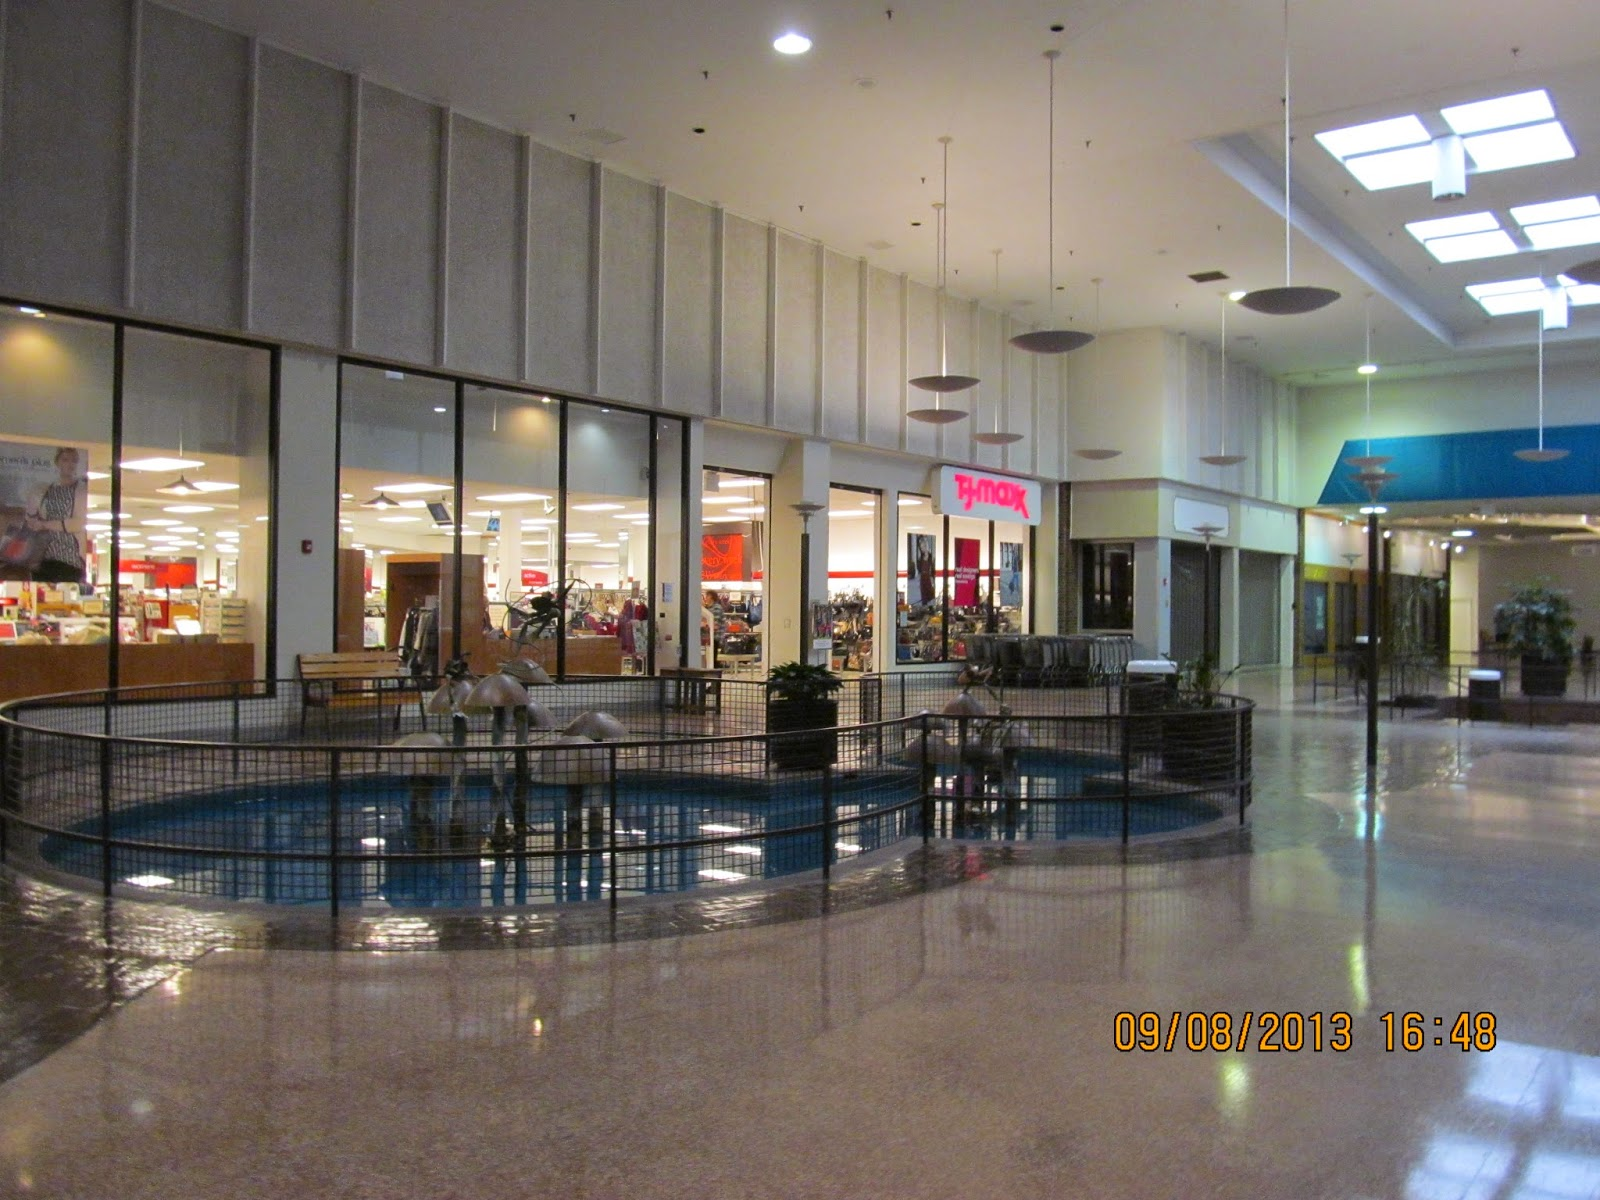 Deerbrook Mall Located in Decatur, Illinois area, Hickory Point Mall offers shopping at many great stores including Bergner's, JCPenney, Kohl's, Sears, Von Maur and The Limited. Enjoy dining in the food court and at popular restaurants like Applebee's, Red Lobster and Texas Roadhouse plus catch a movie at the Hickory Point 12 Theater.